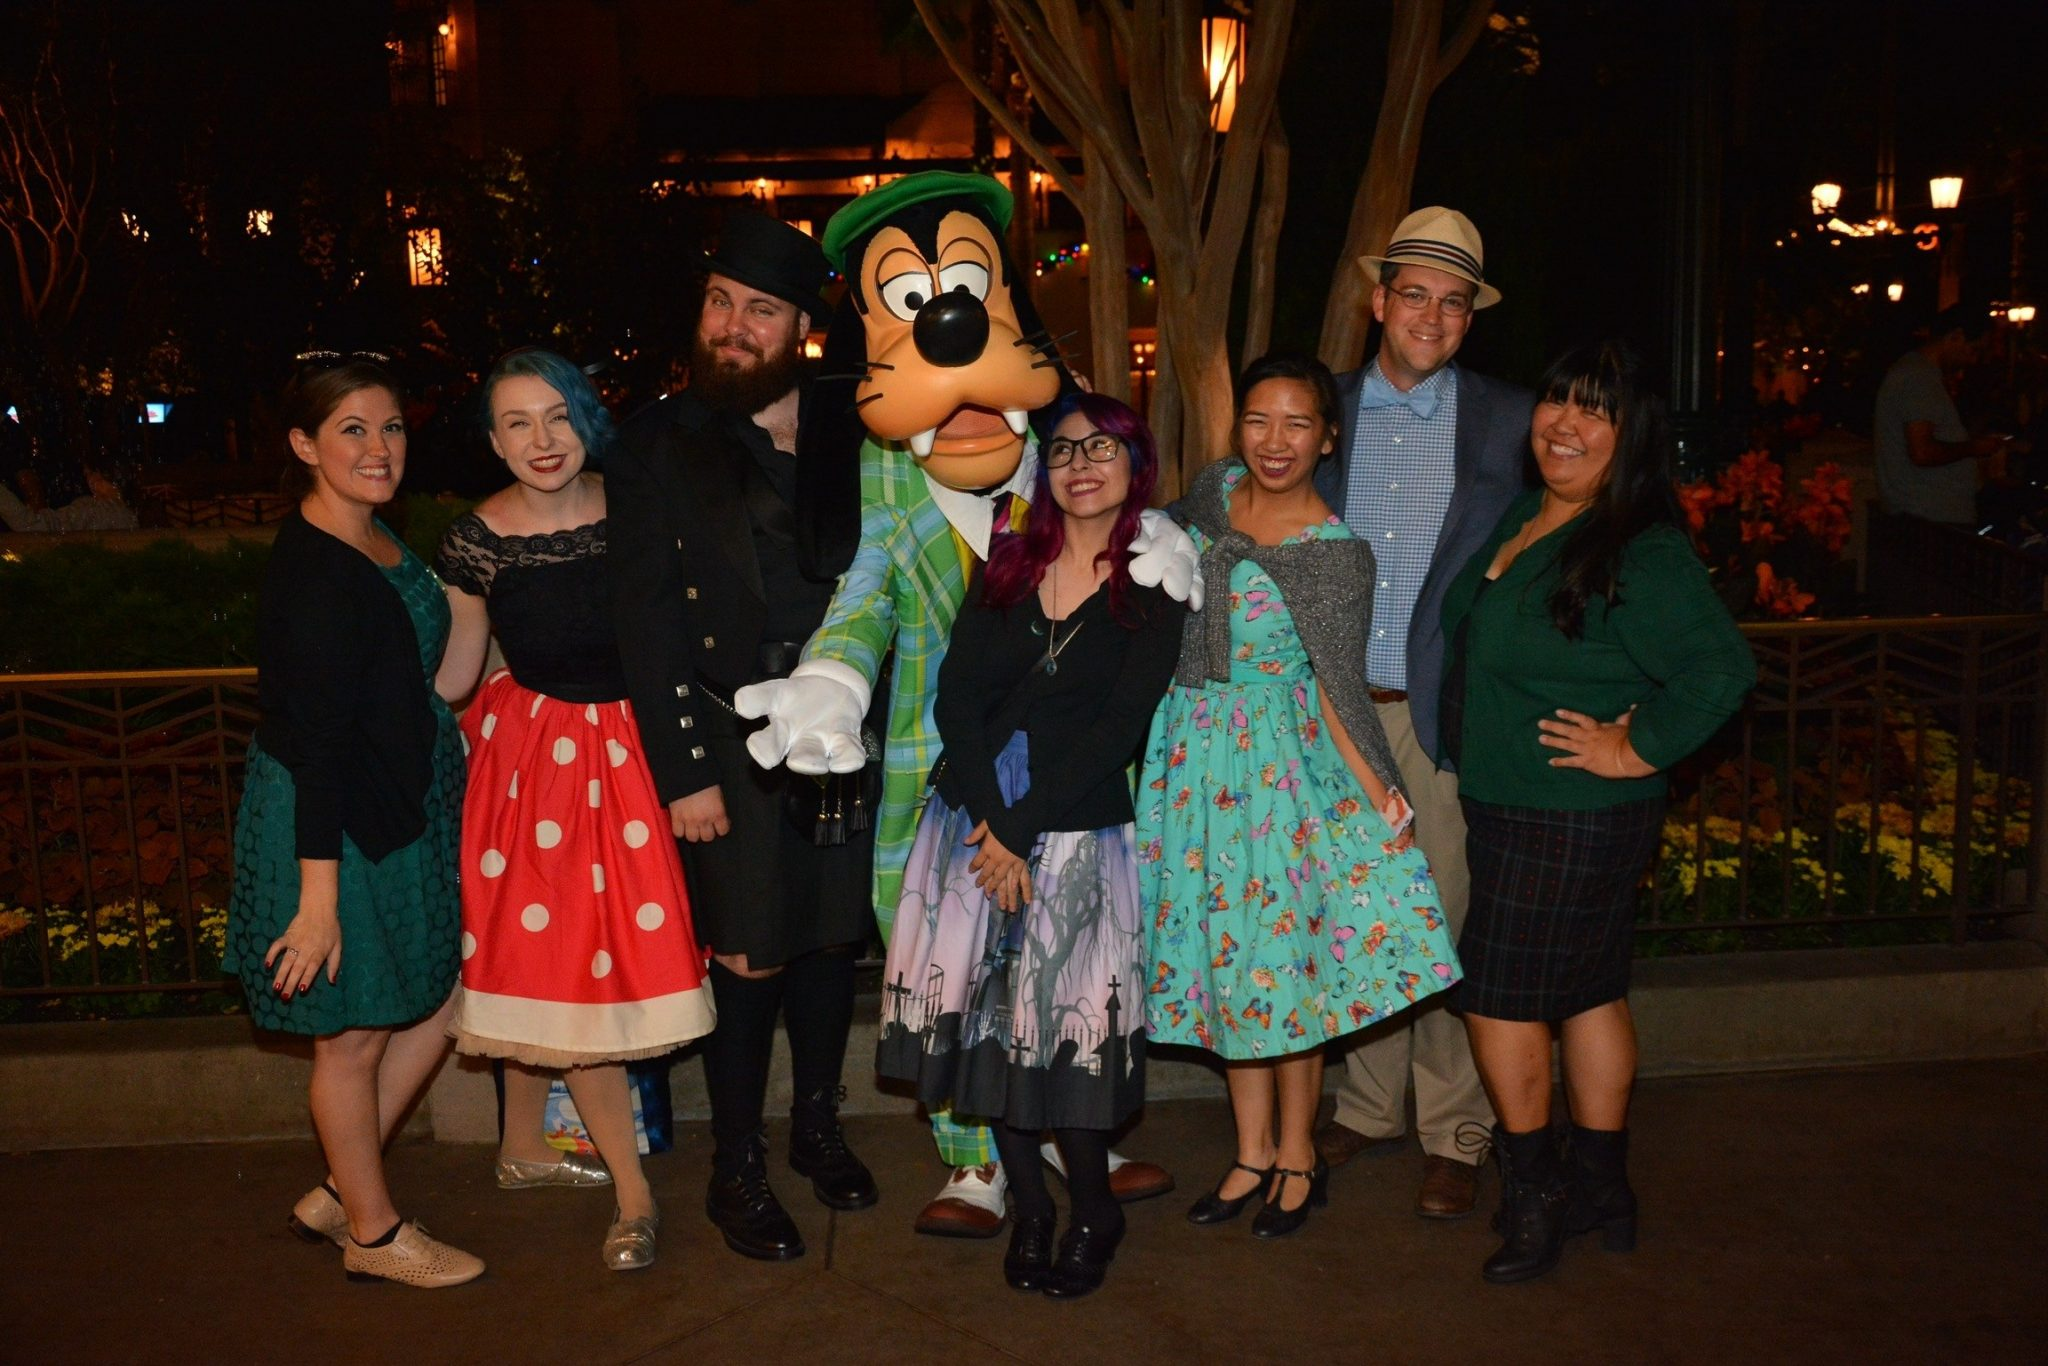 Meeting Characters at a Disney Park: A Guide